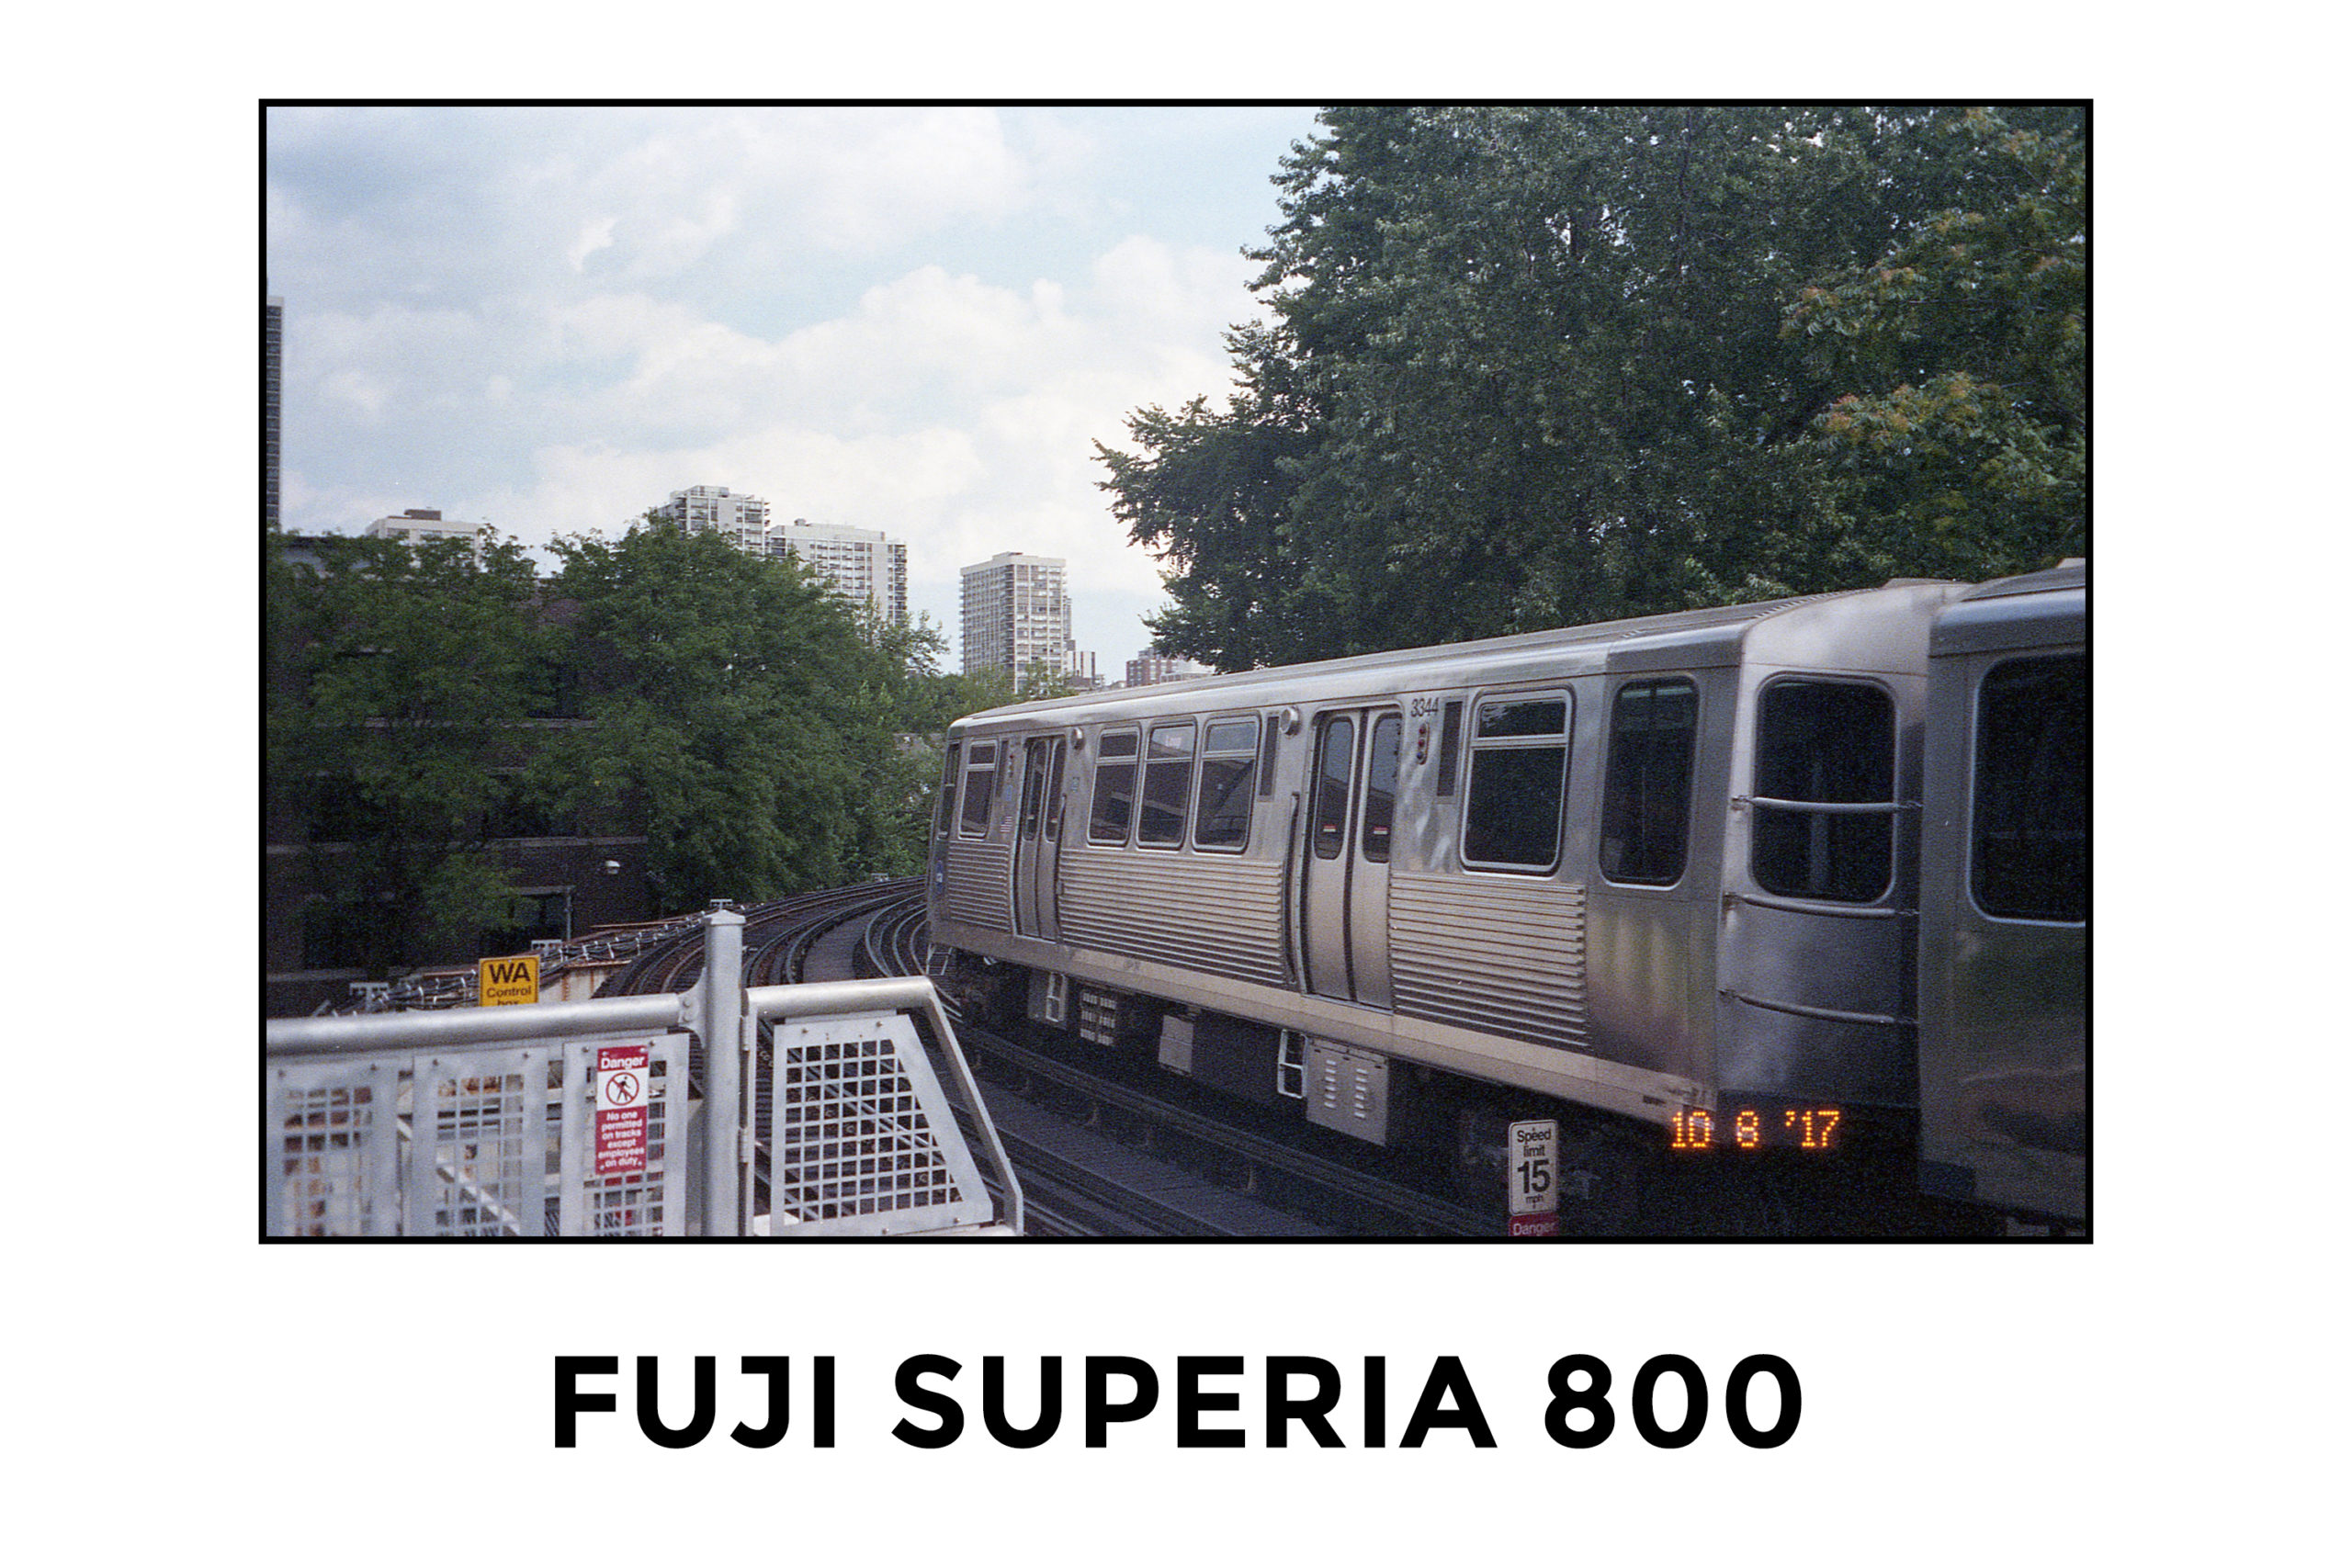 Fuji Superai 800 (1) - Fuji Superia 800 vs. Kodak Portra 800 Film Stock Review - FilterGrade Blog